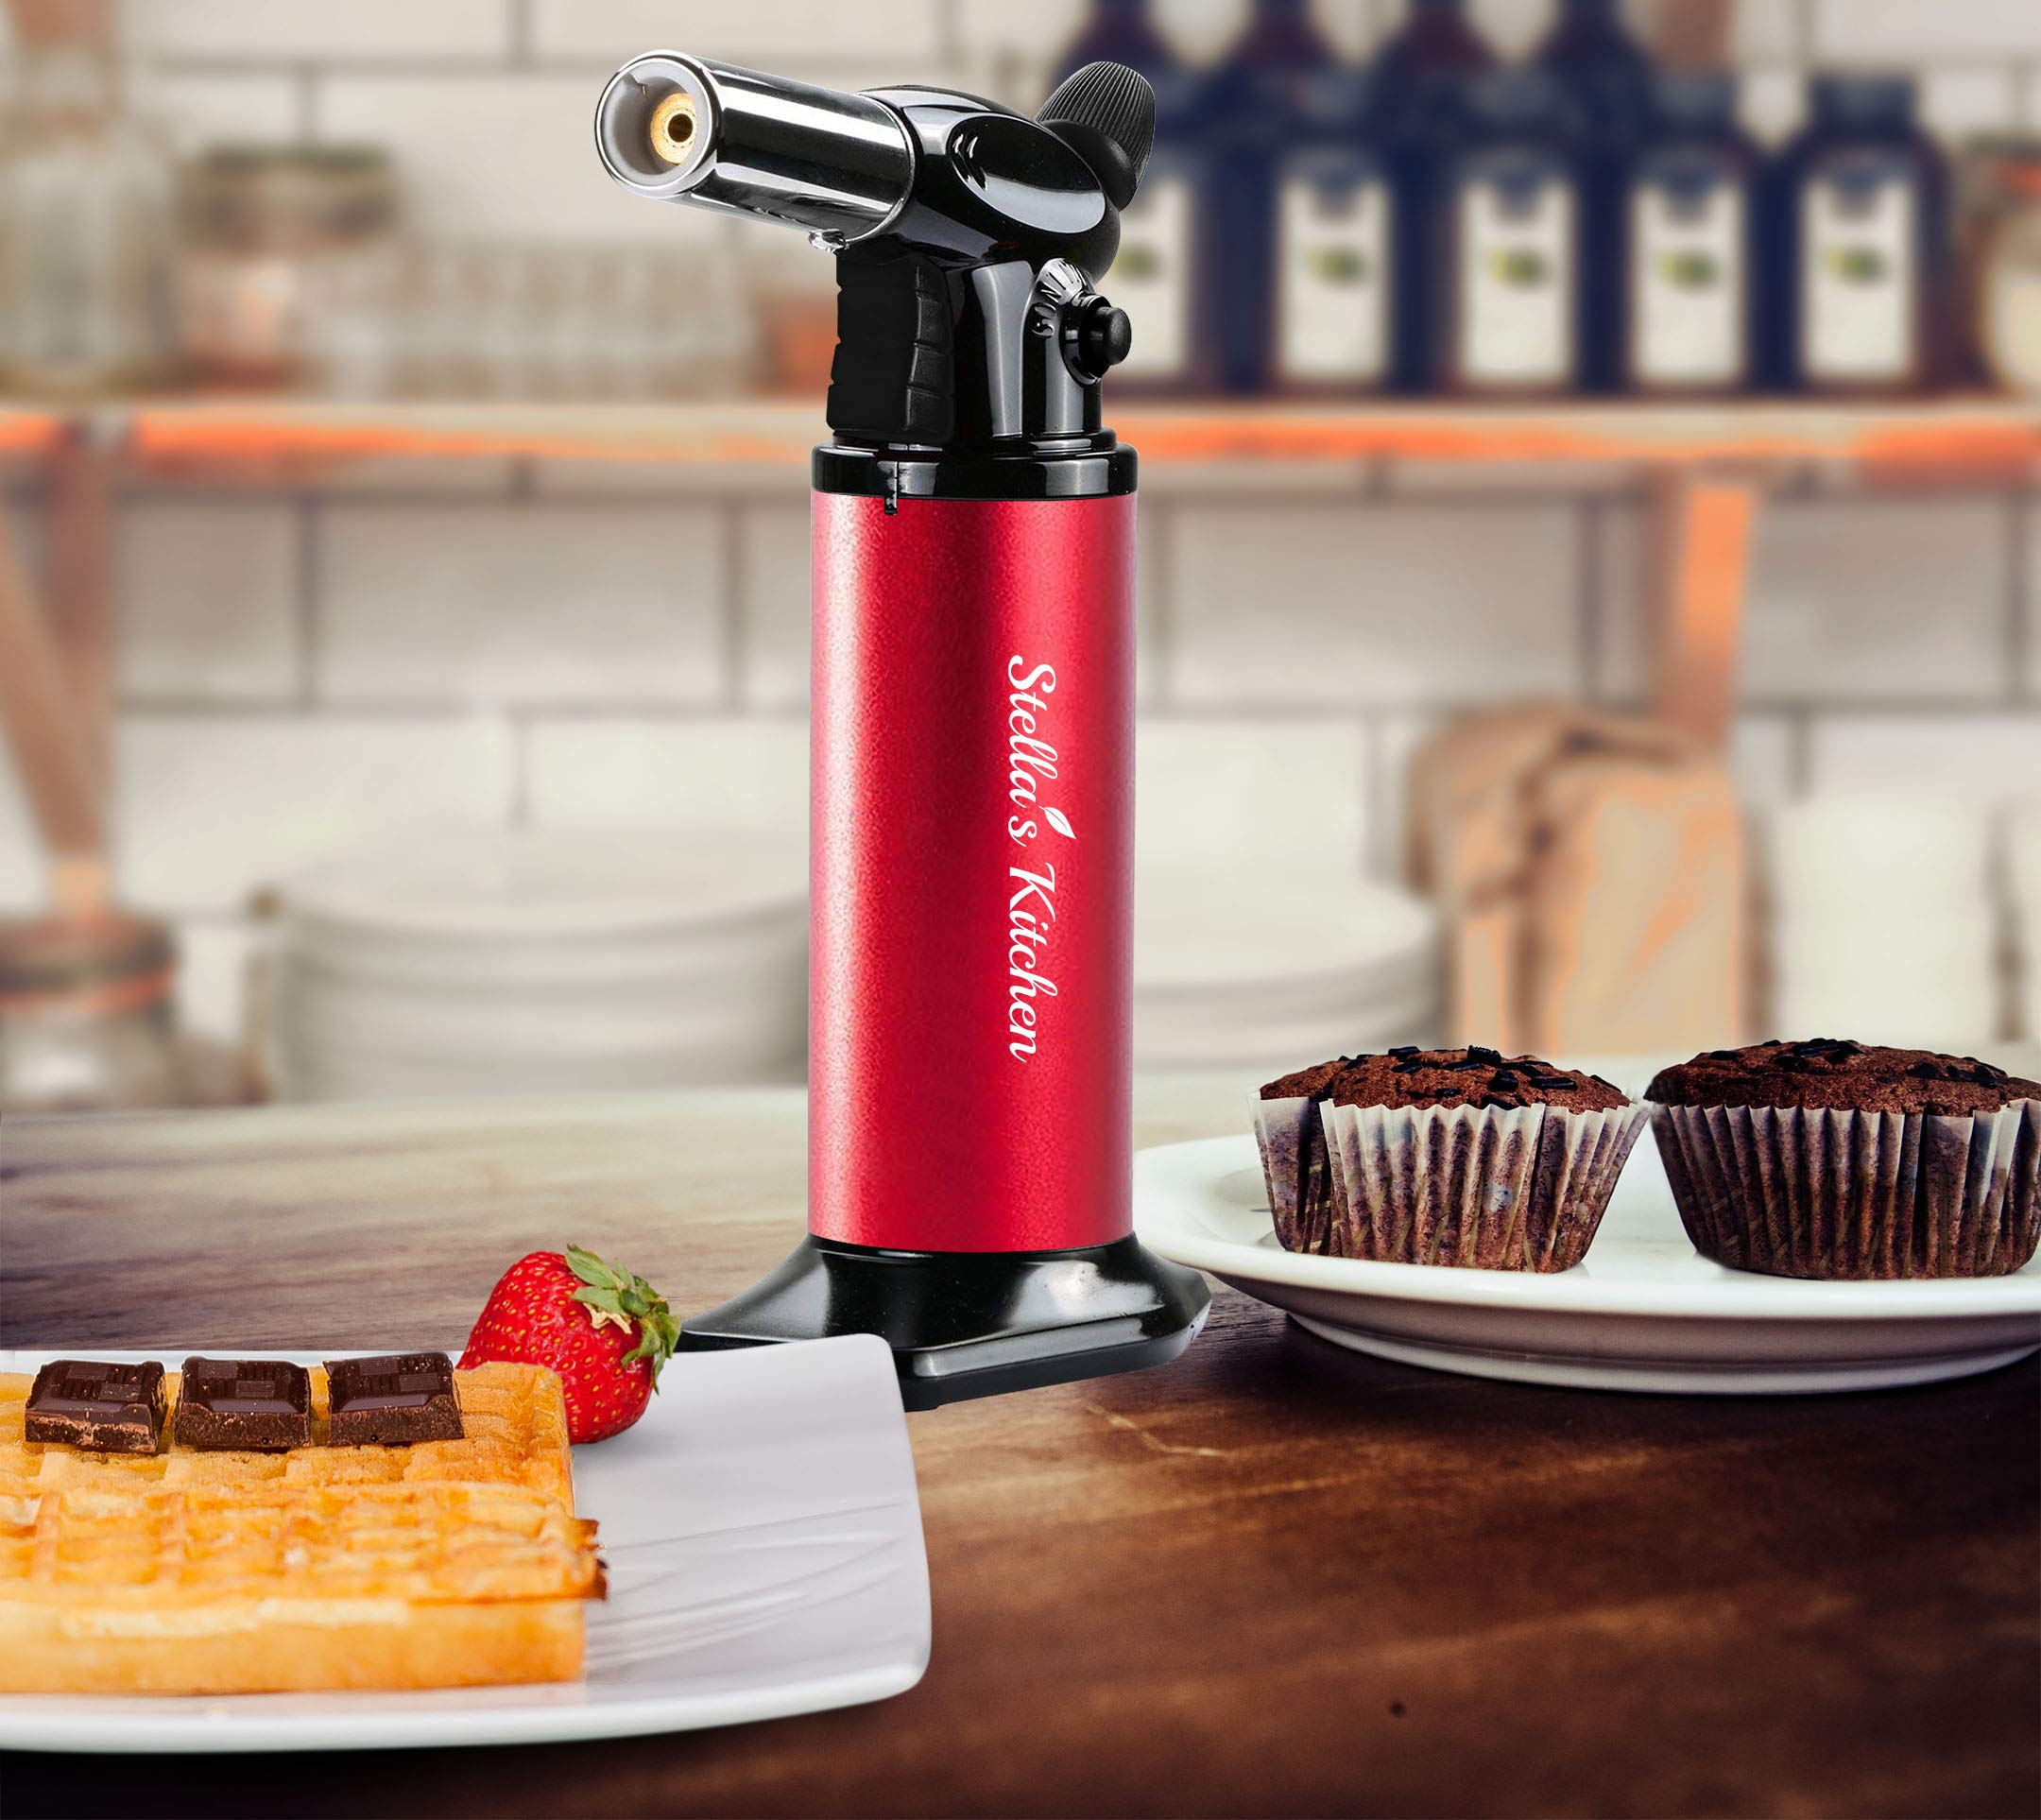 Culinary Torch for Creme Brulee 5 Pack-Culinary Torch-Refillable Butane Torch-Blow Torch-Cooking Torch - Butane Food Torch- Torch for Dabs with Fuel Gauge&Adjustable Flame-Chefs Torch- Butane Torch by Stella's Kitchen (Image #6)